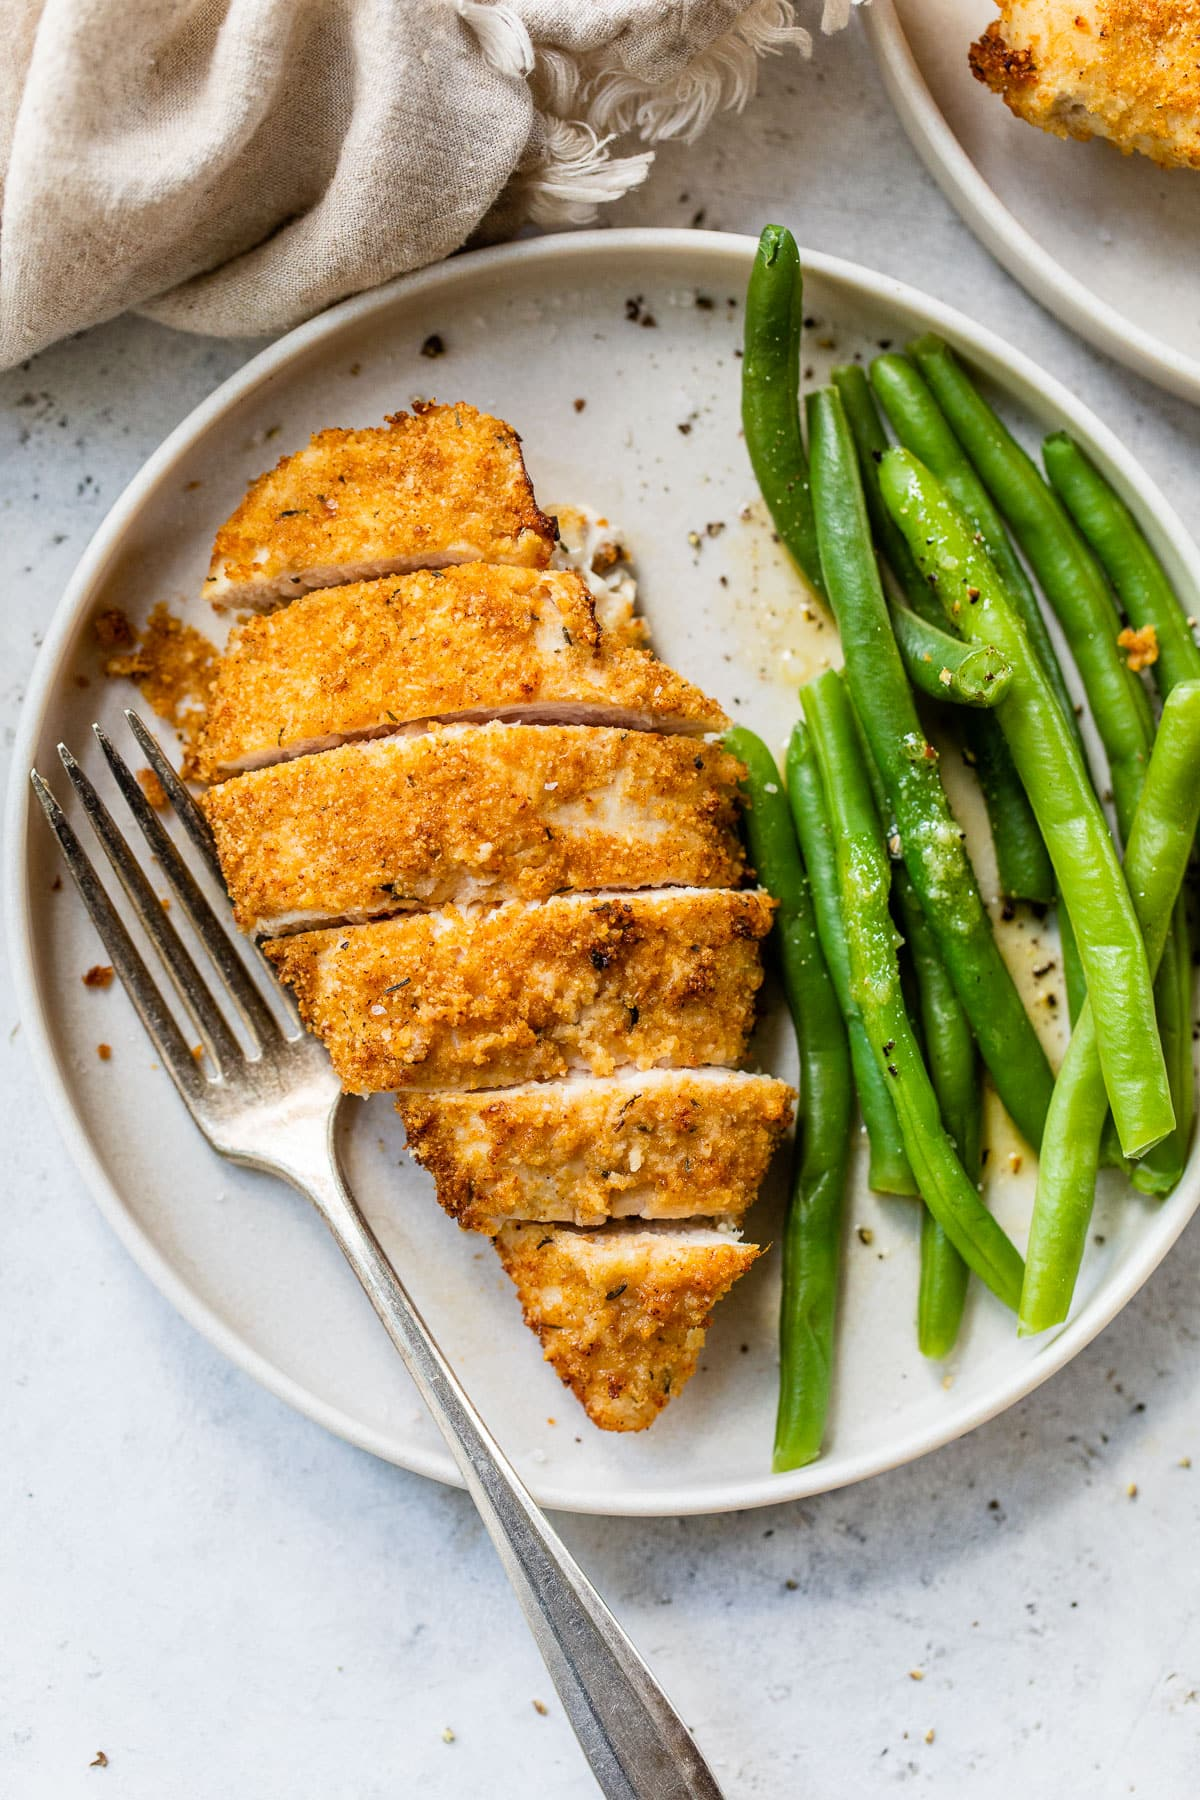 crispy air fryer fried chicken breast with no flour on a plate